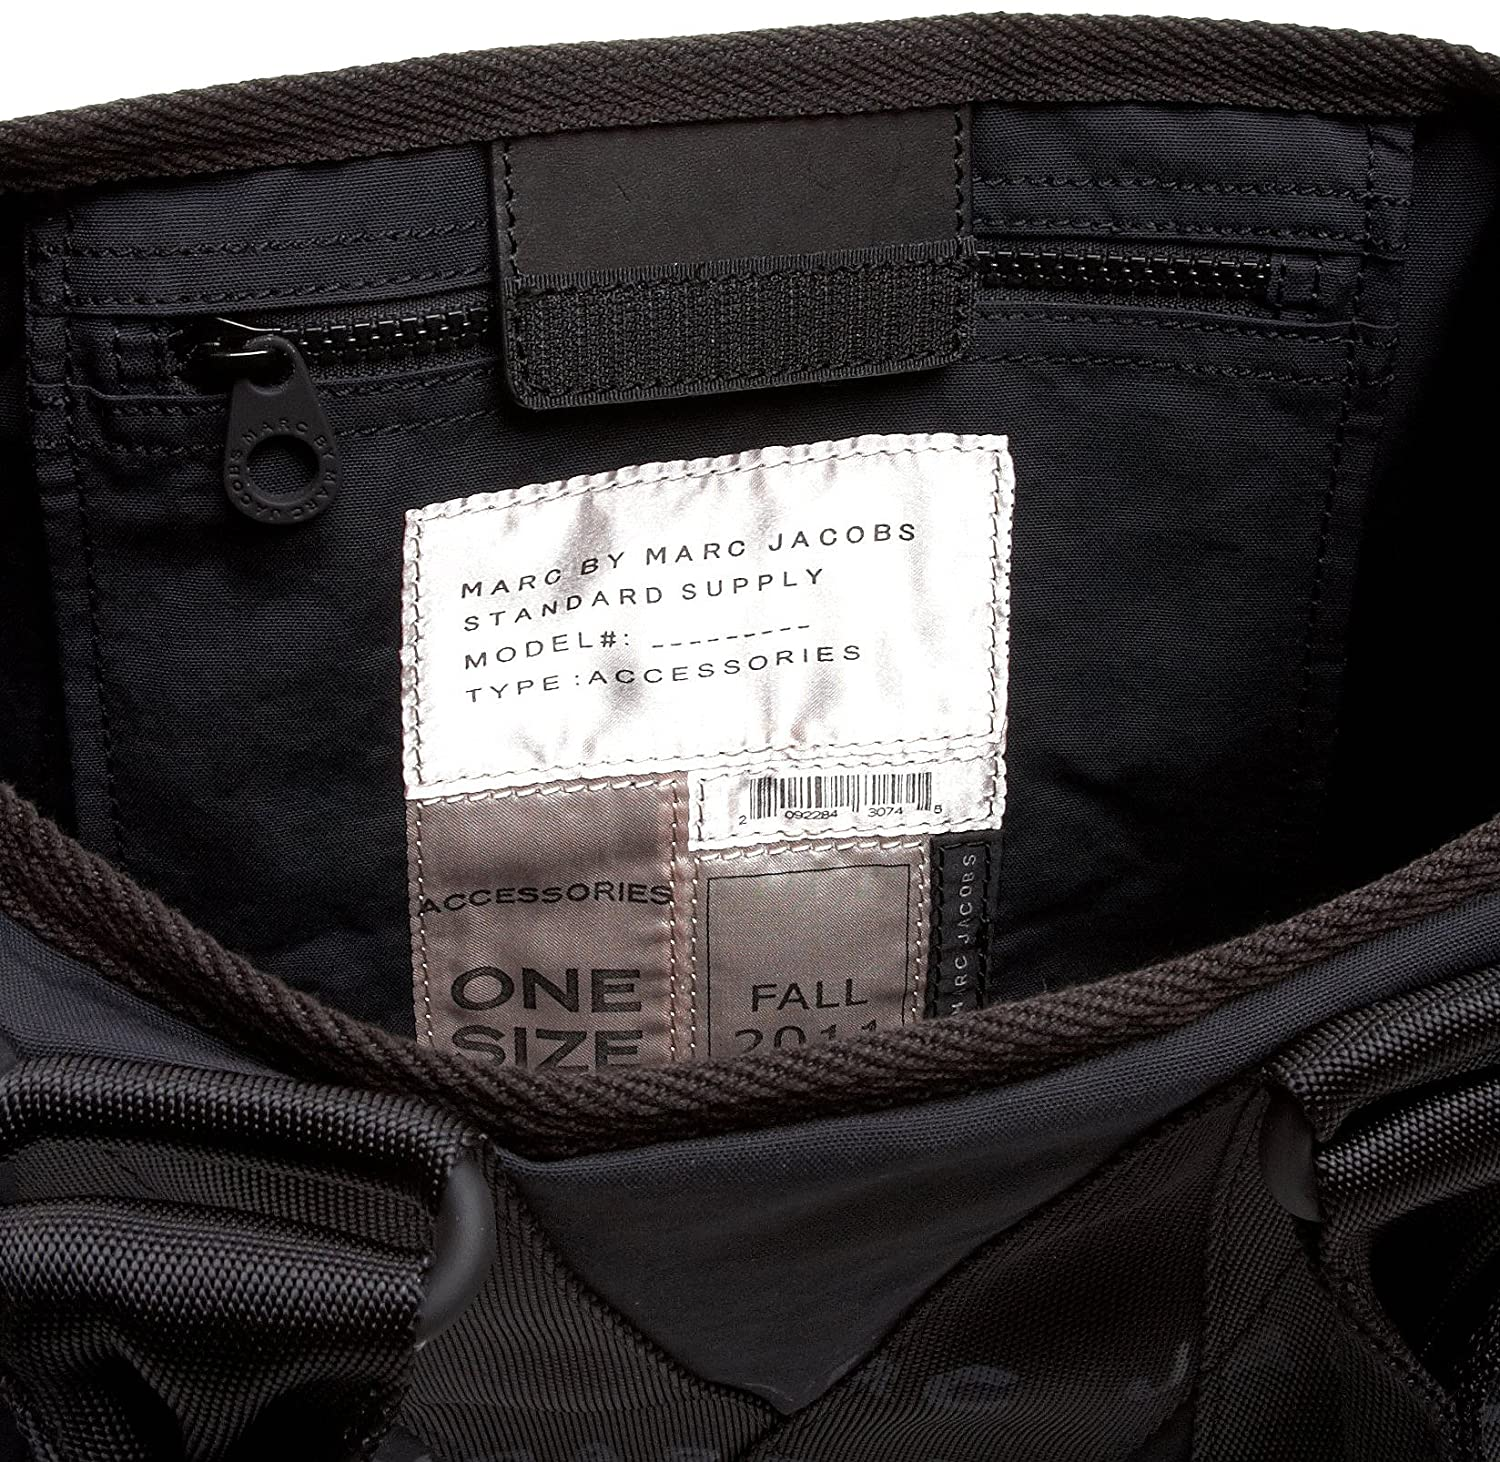 ff07d8d930a98 Amazon.com: Marc by Marc Jacobs Standard Supply Small Cargo Tote,Black,one  size: Clothing